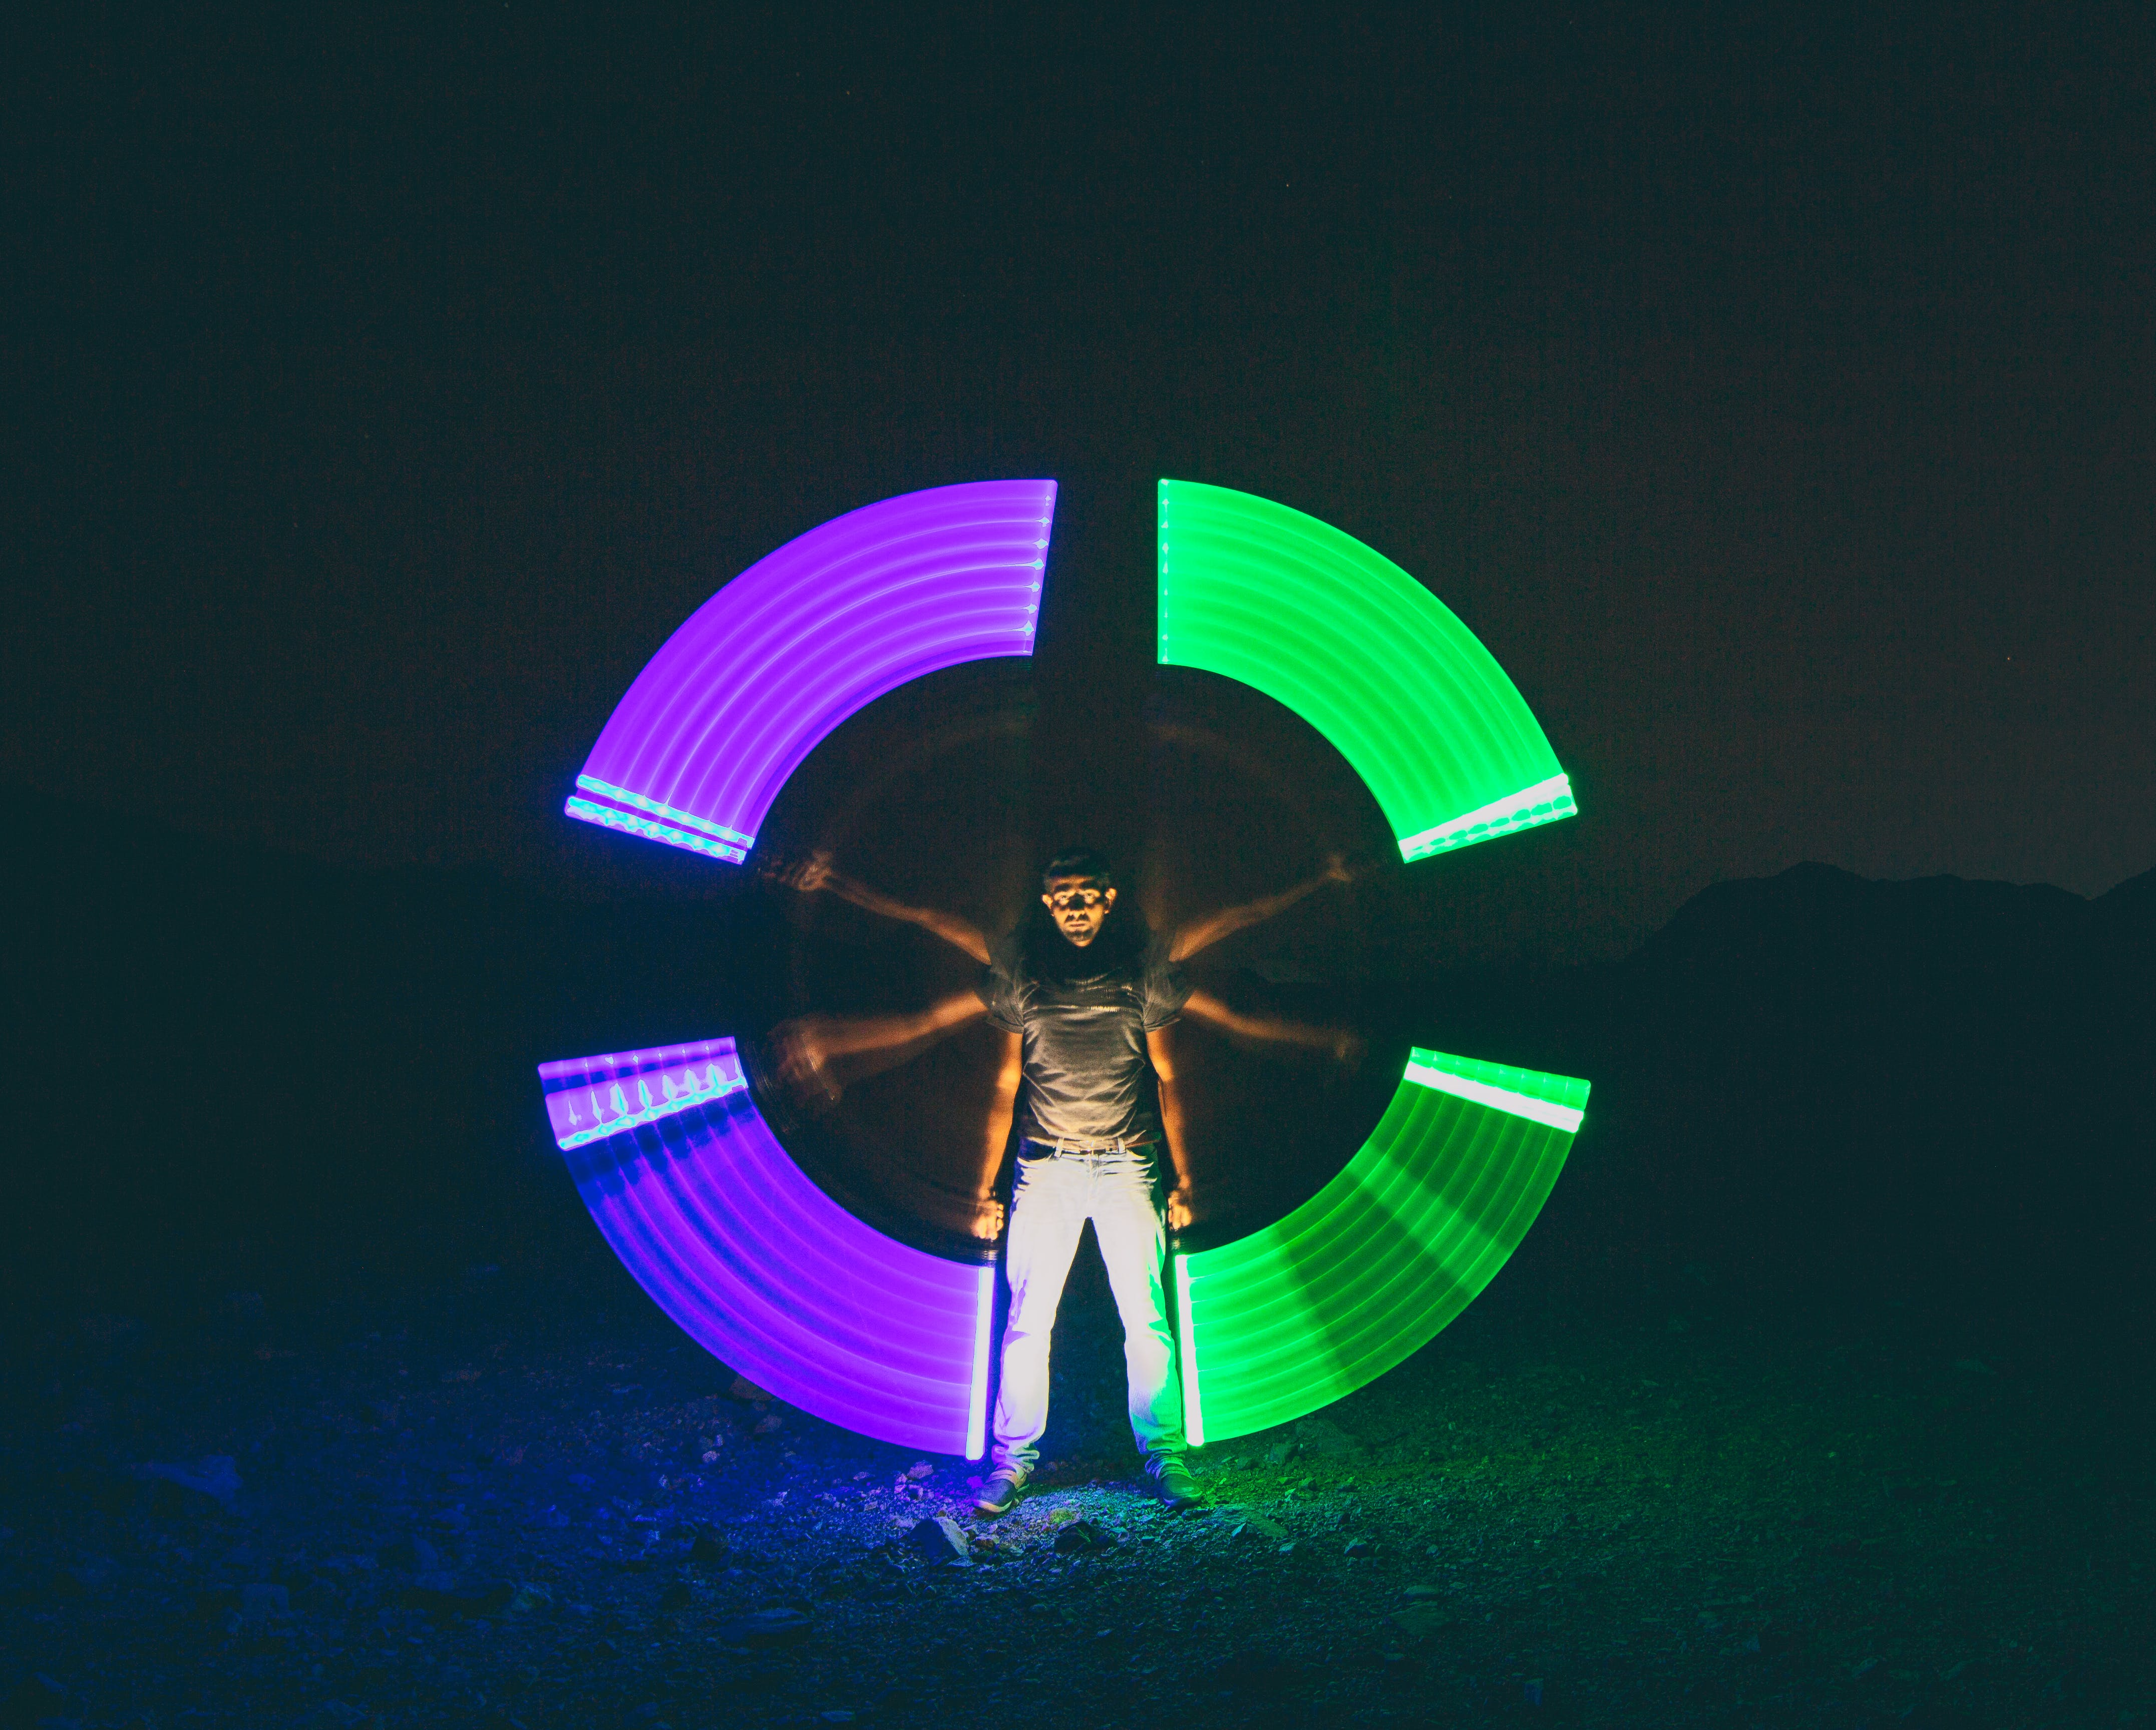 Time Lapse Photography of Man Holding Purple and Green Light Fixtures